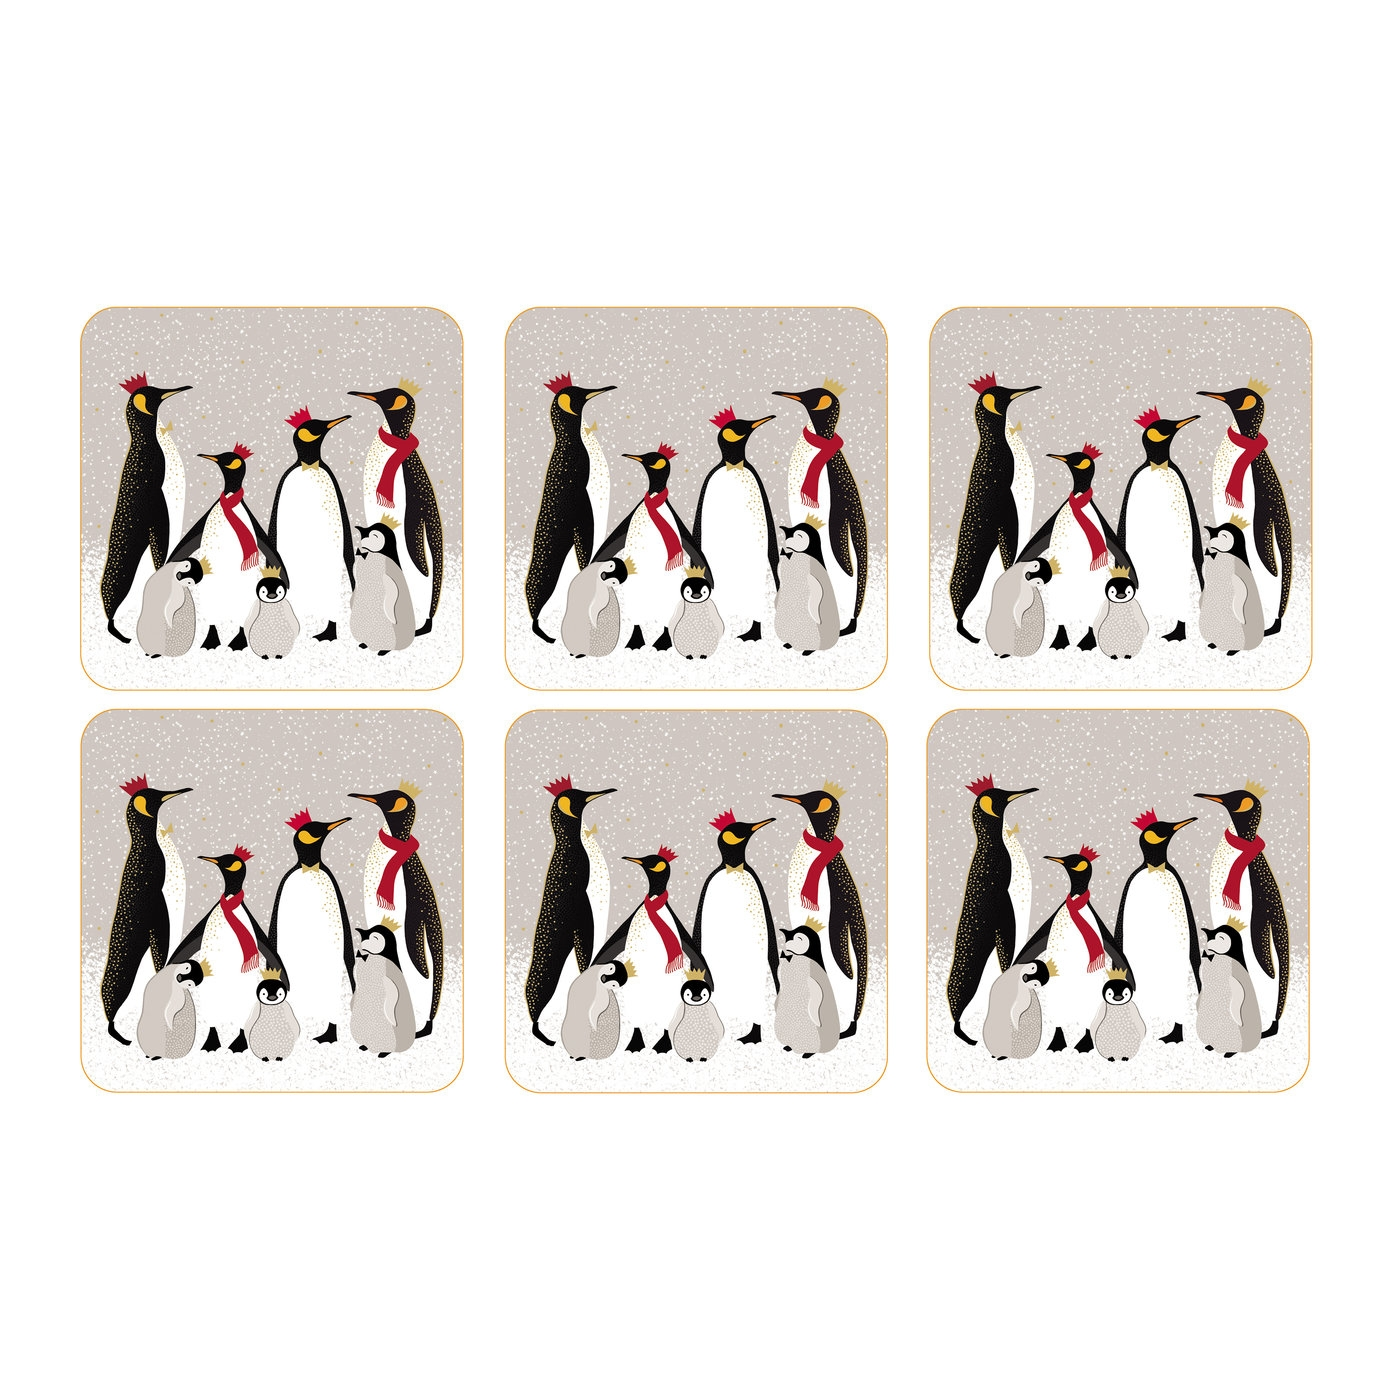 Pimpernel Sara Miller London Penguin Coasters Set of 6  image number 0